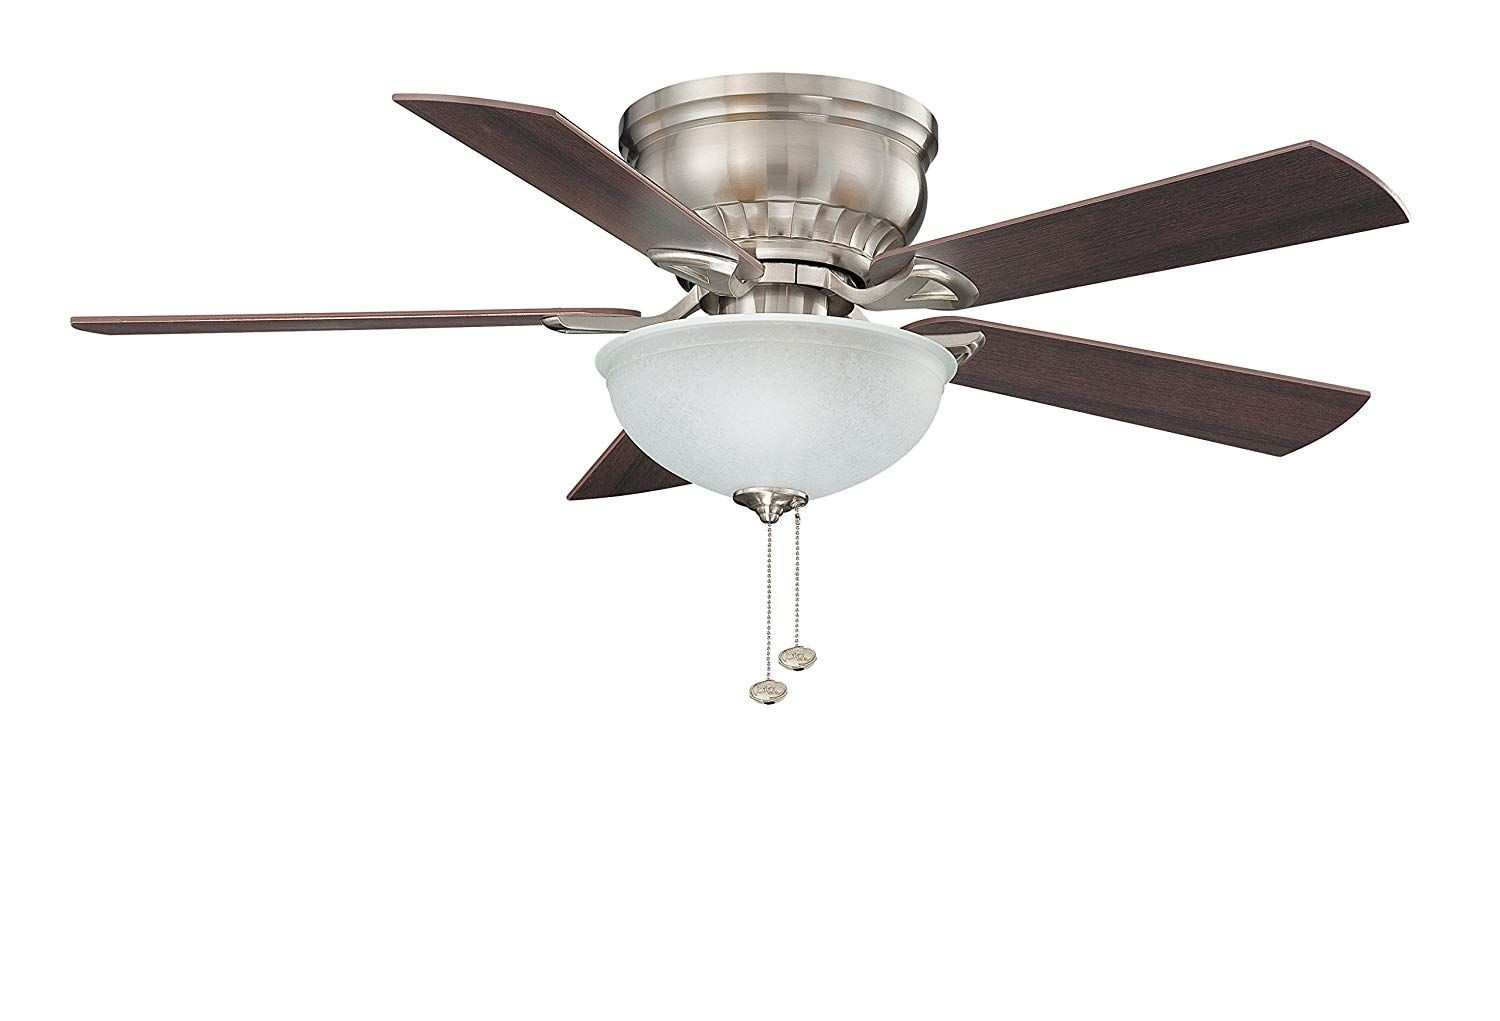 Crosley 44 Inch Ceiling Fan With Light Kit Brushed Nickel Finish With Maple Walnut Blade Fi In 2021 Ceiling Fan With Light Ceiling Fan Room Air Conditioner Portable